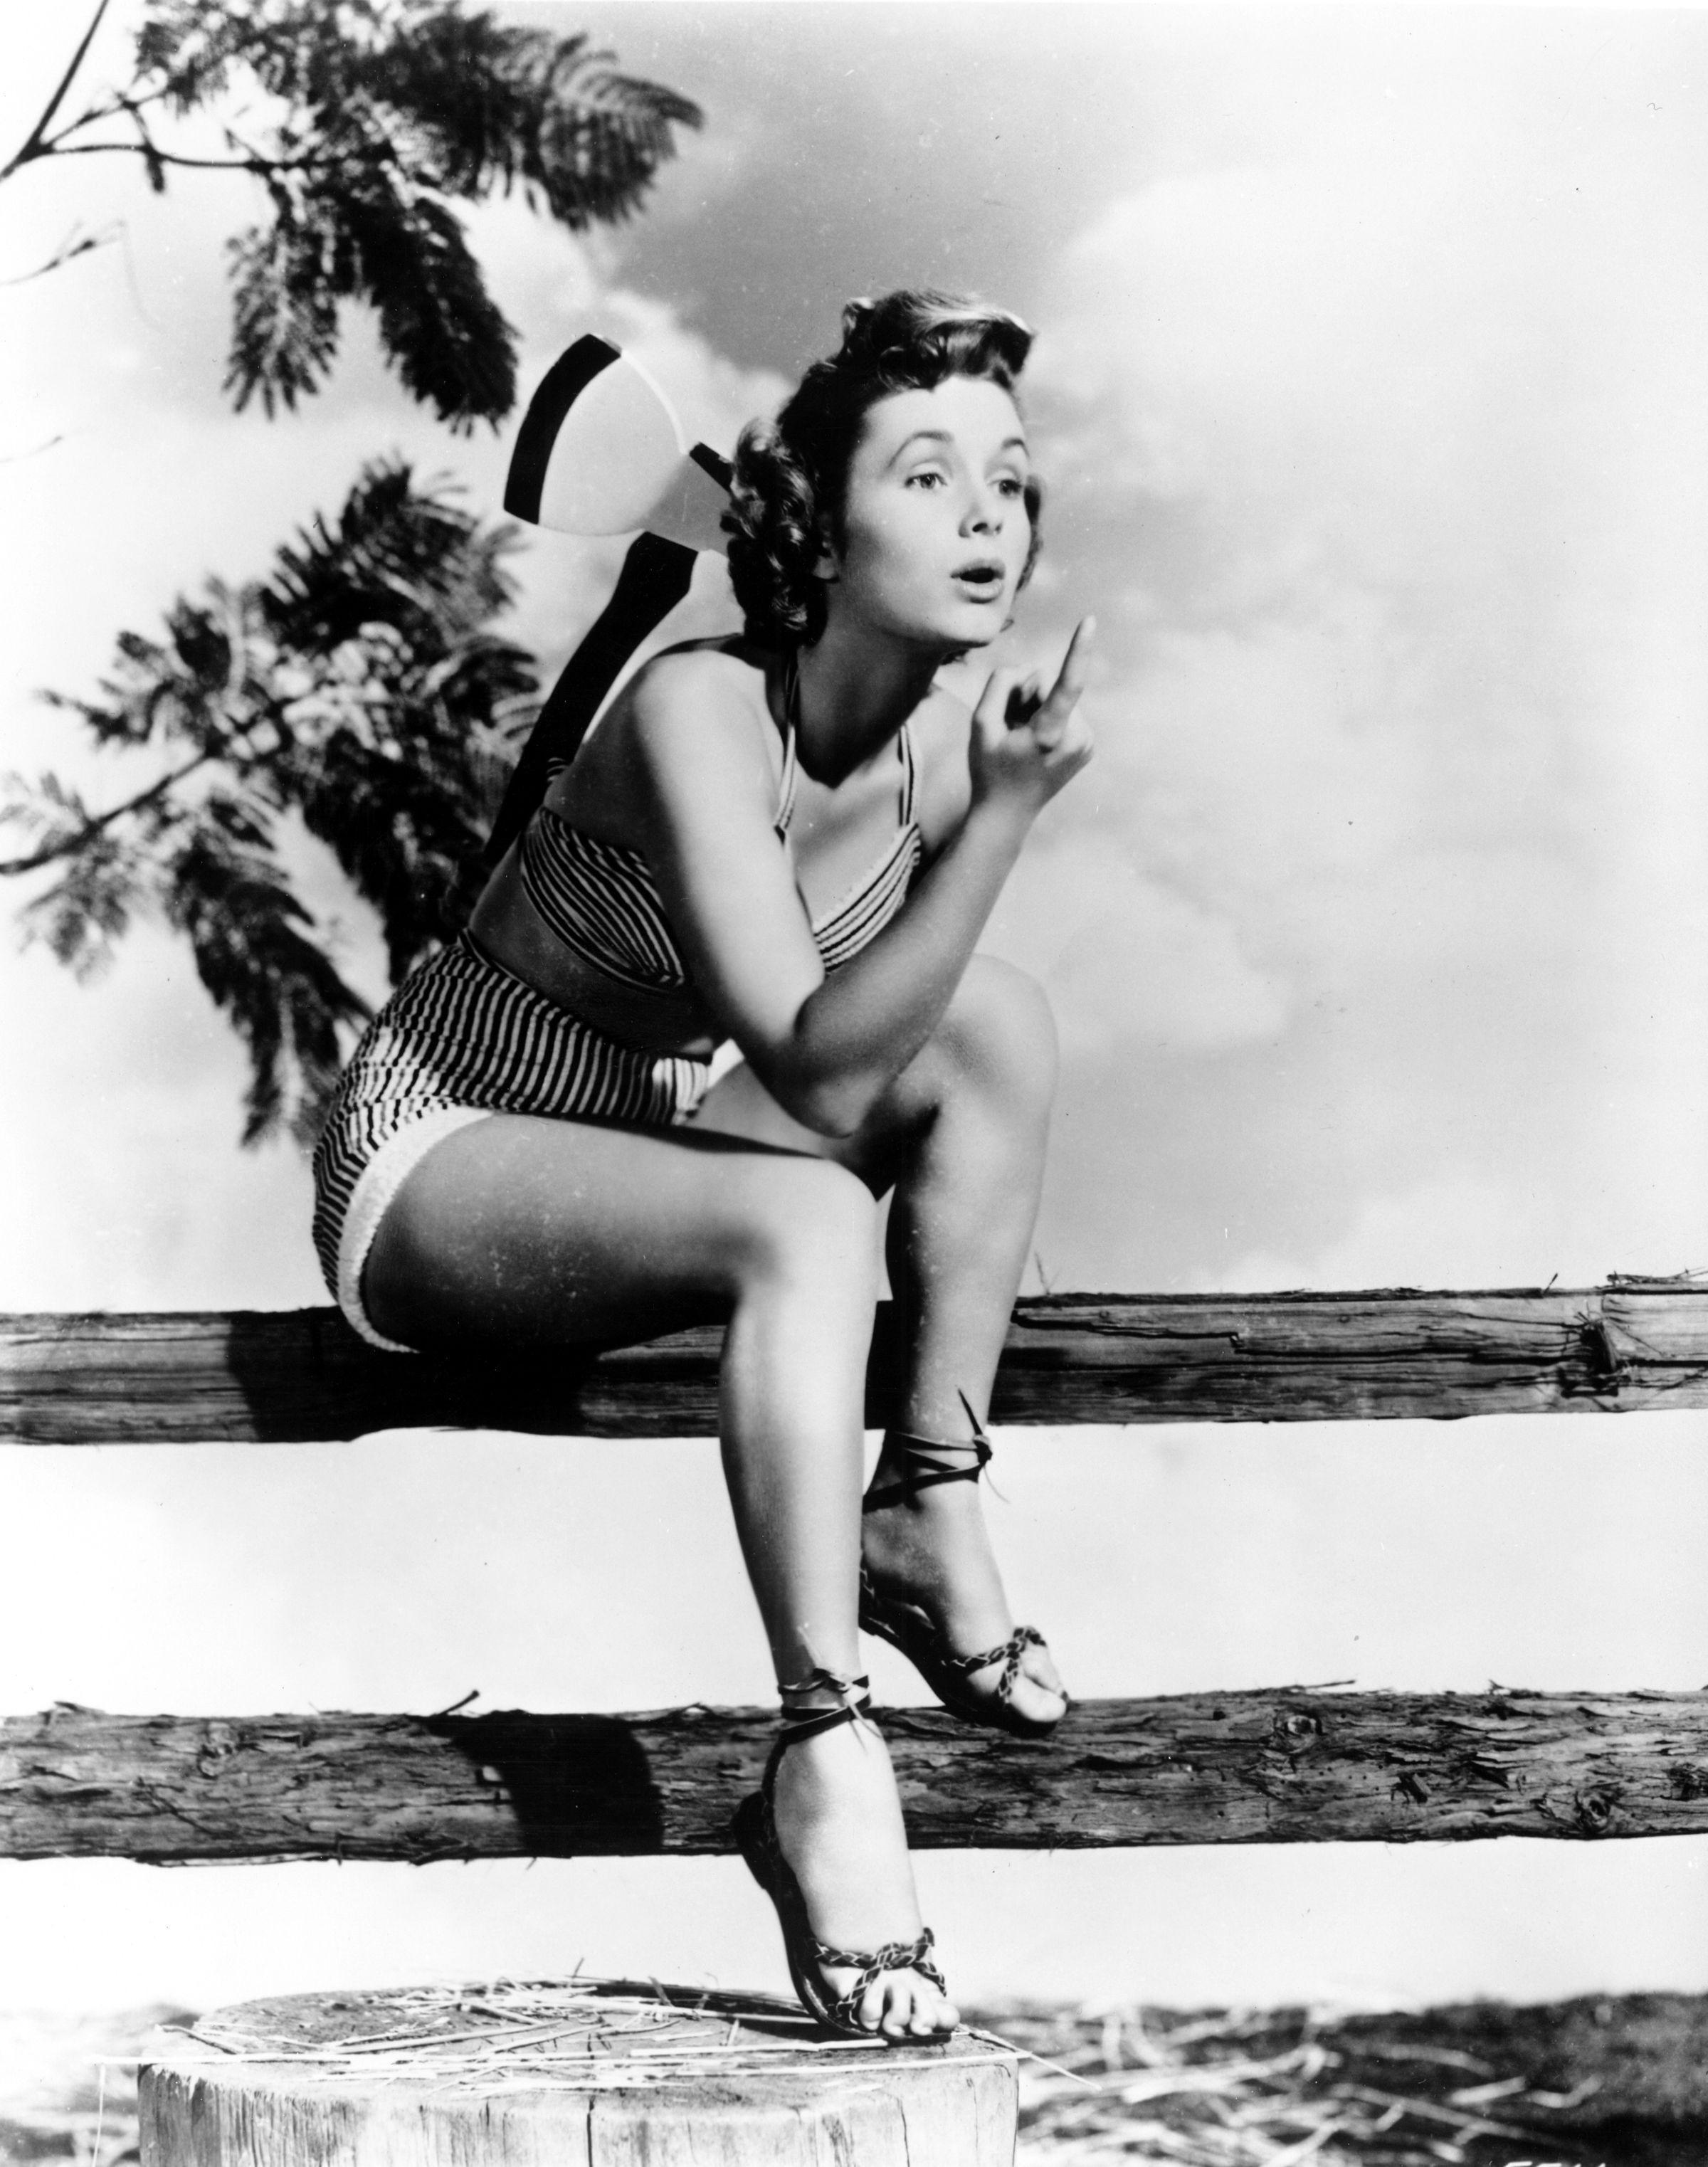 Debbie Reynolds photo 13 of 46 pics, wallpaper - photo #414338 ...